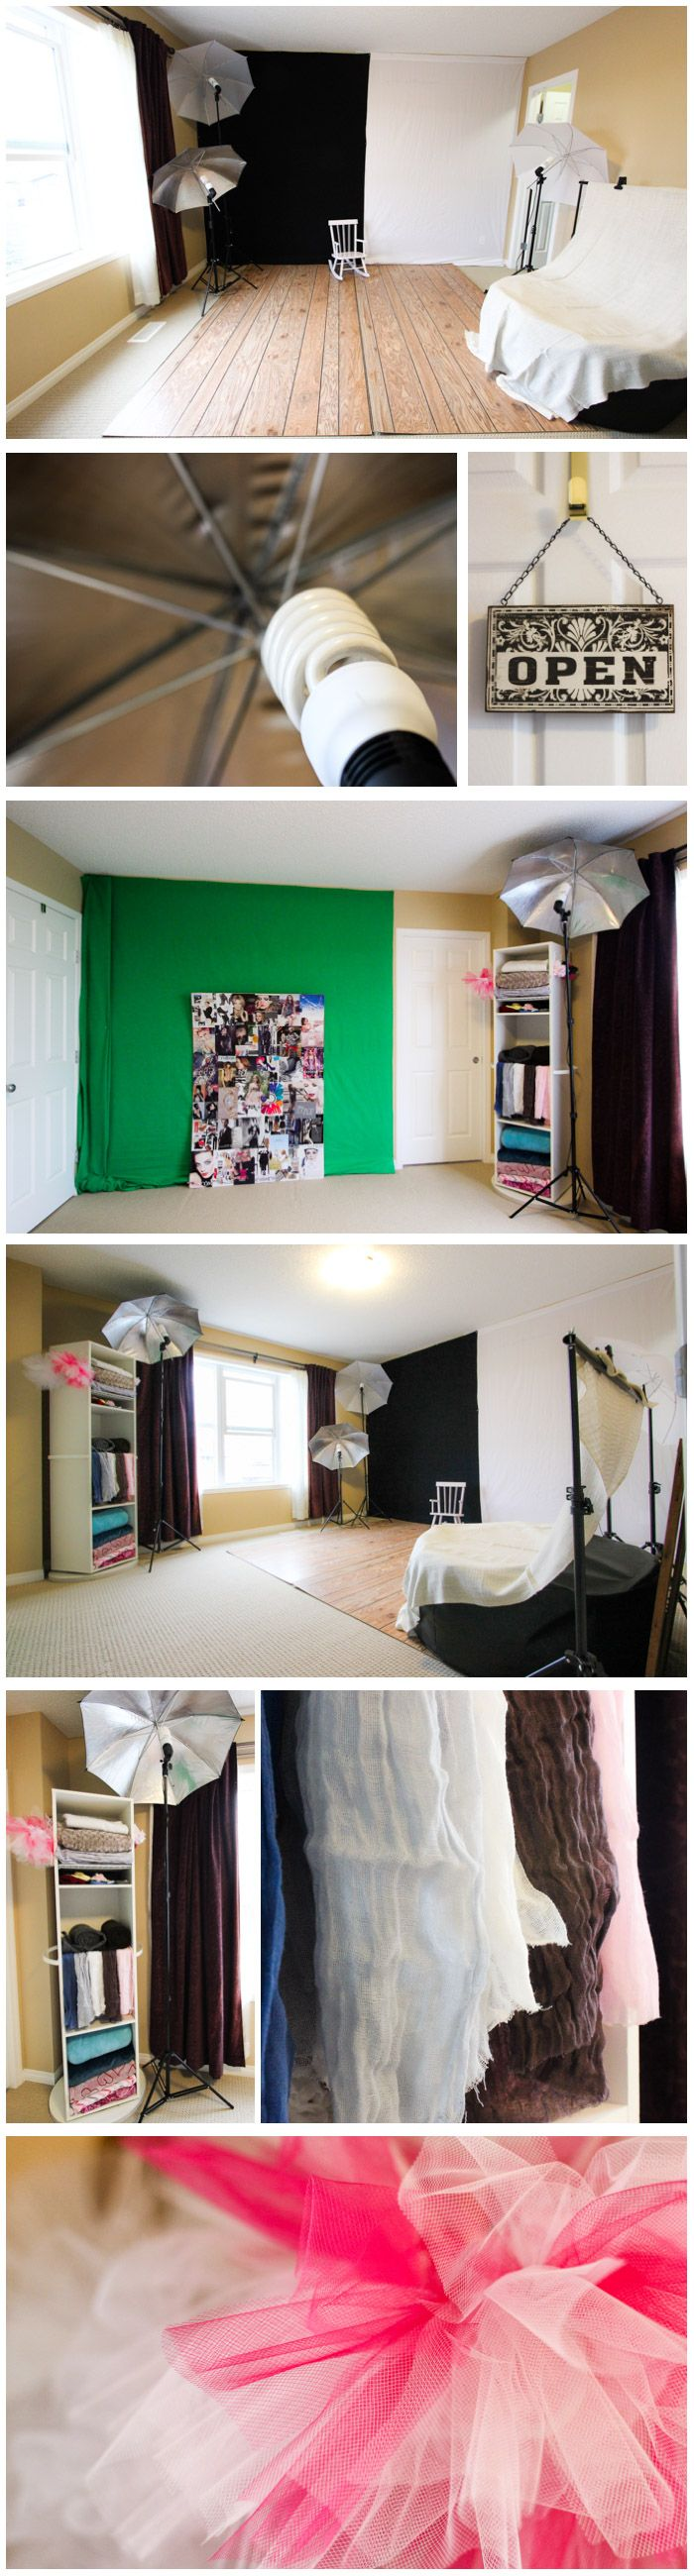 My Home Photography Studio! - Calgary and Airdrie Photographer - Newborn, Family, Portrait, Maternity, Pet, Engagement, Wedding - Meagan Paige Photography